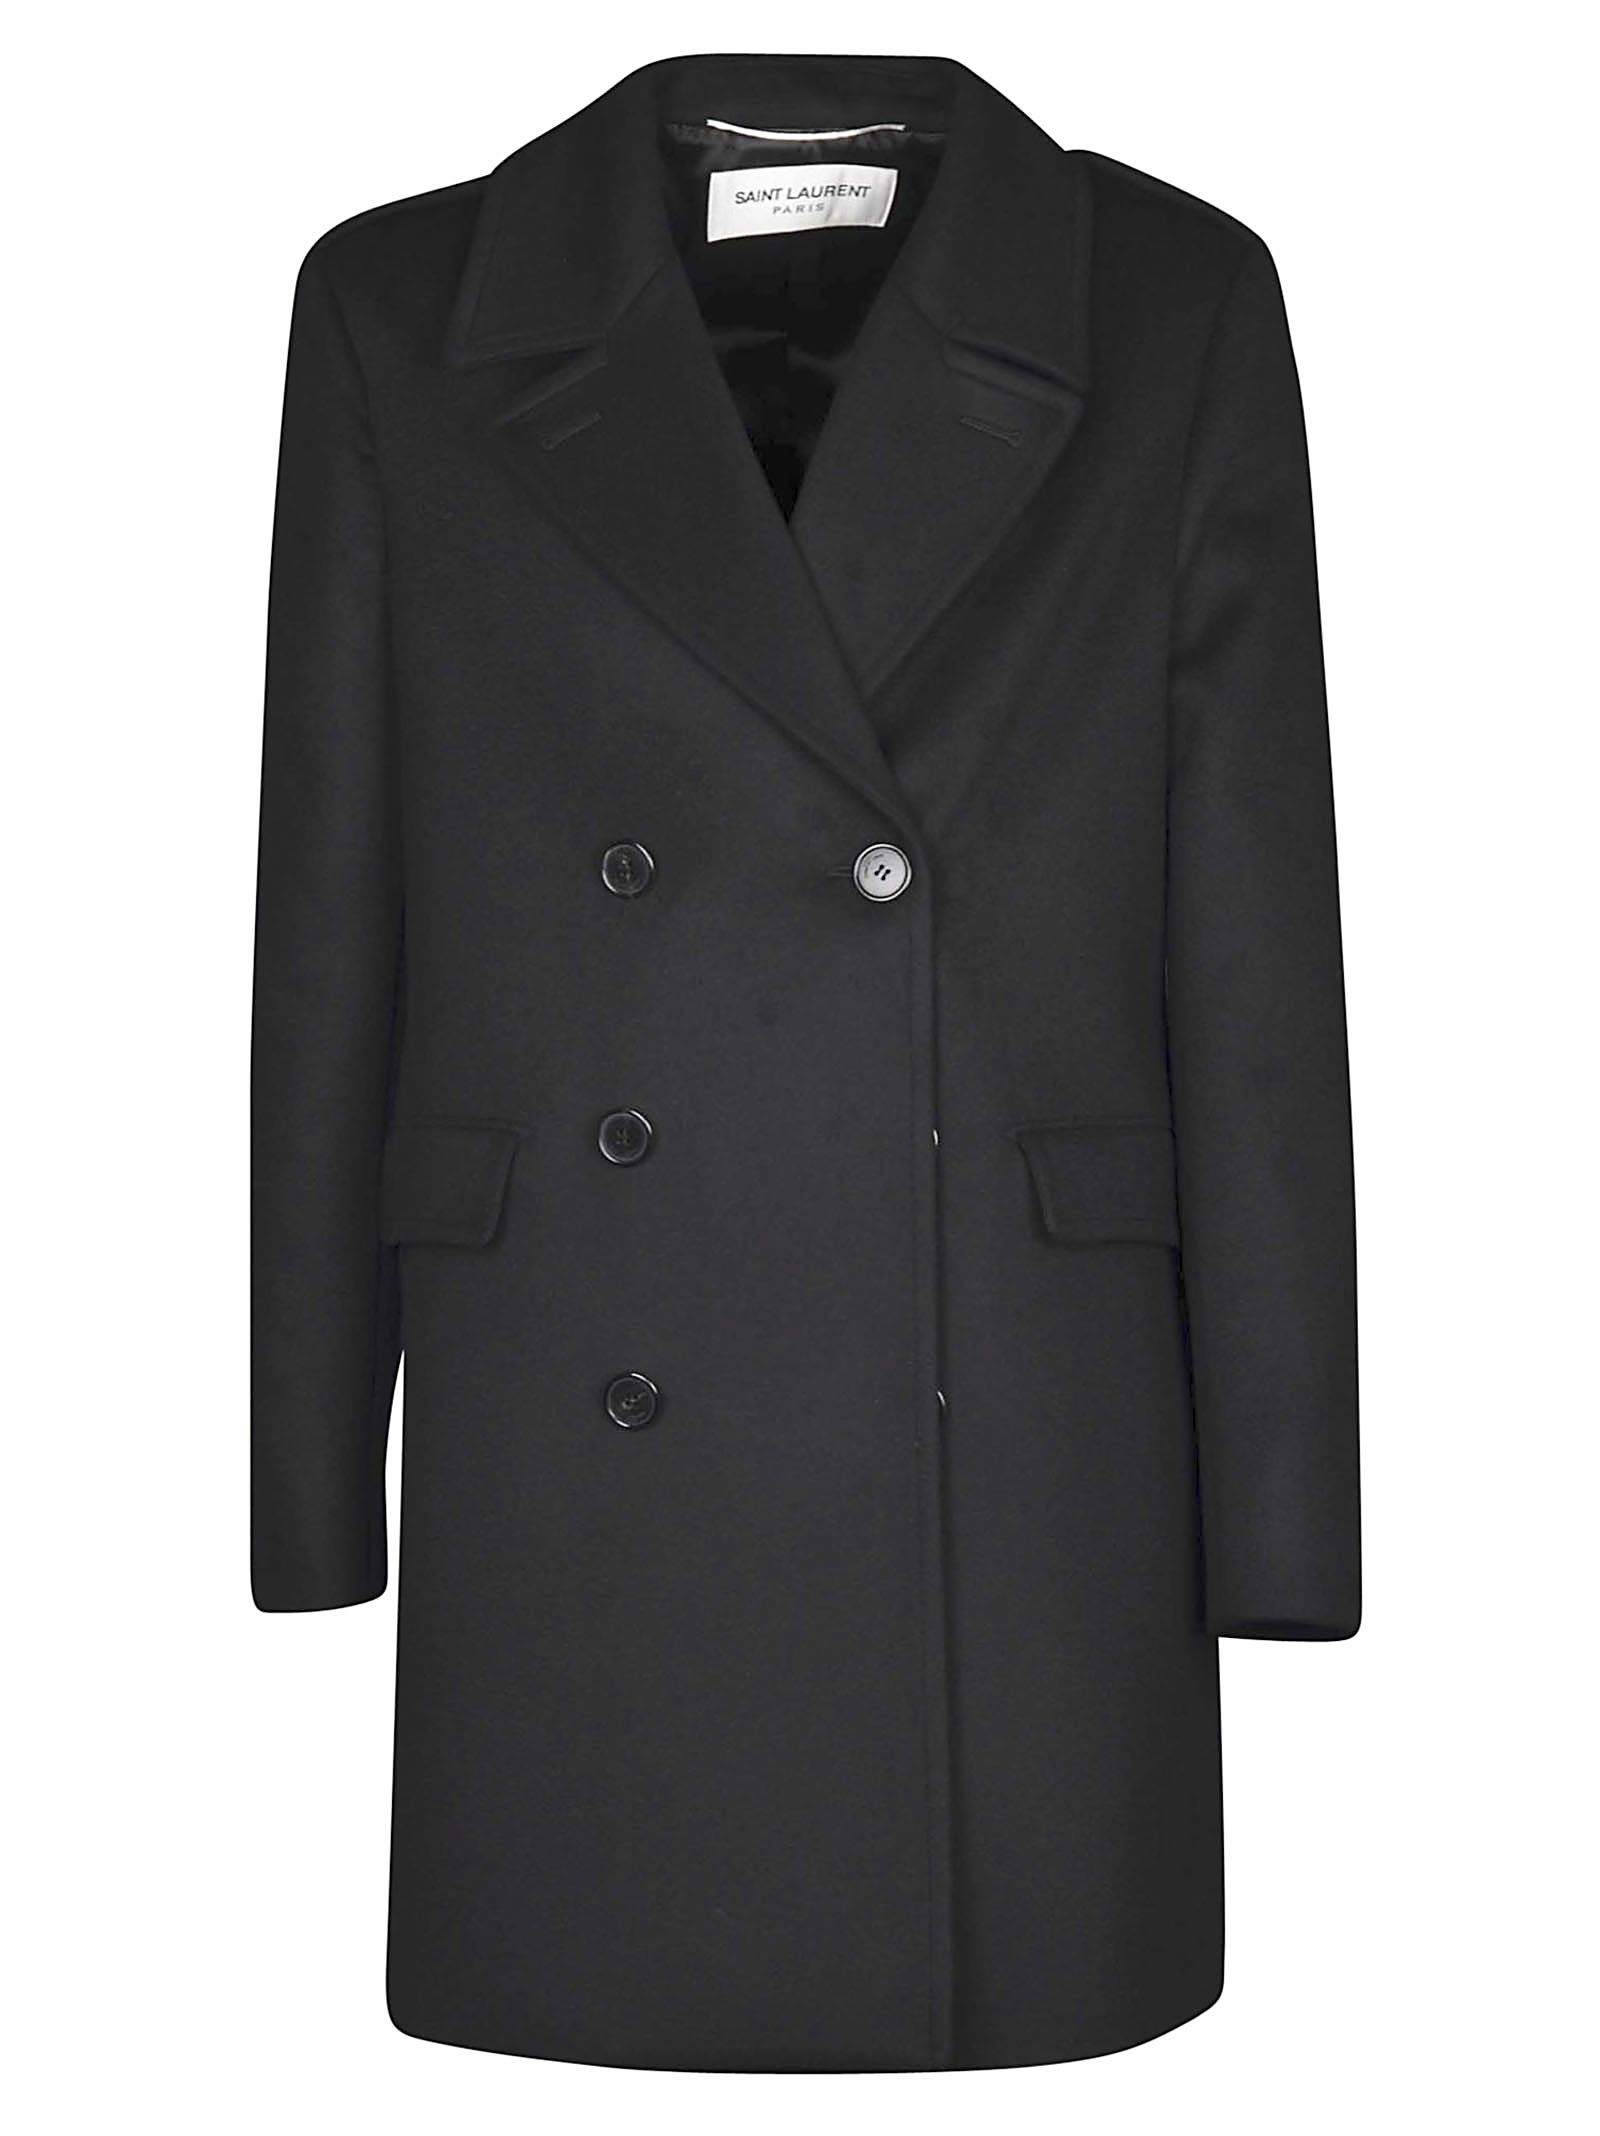 SAINT LAURENT CLASSIC COAT